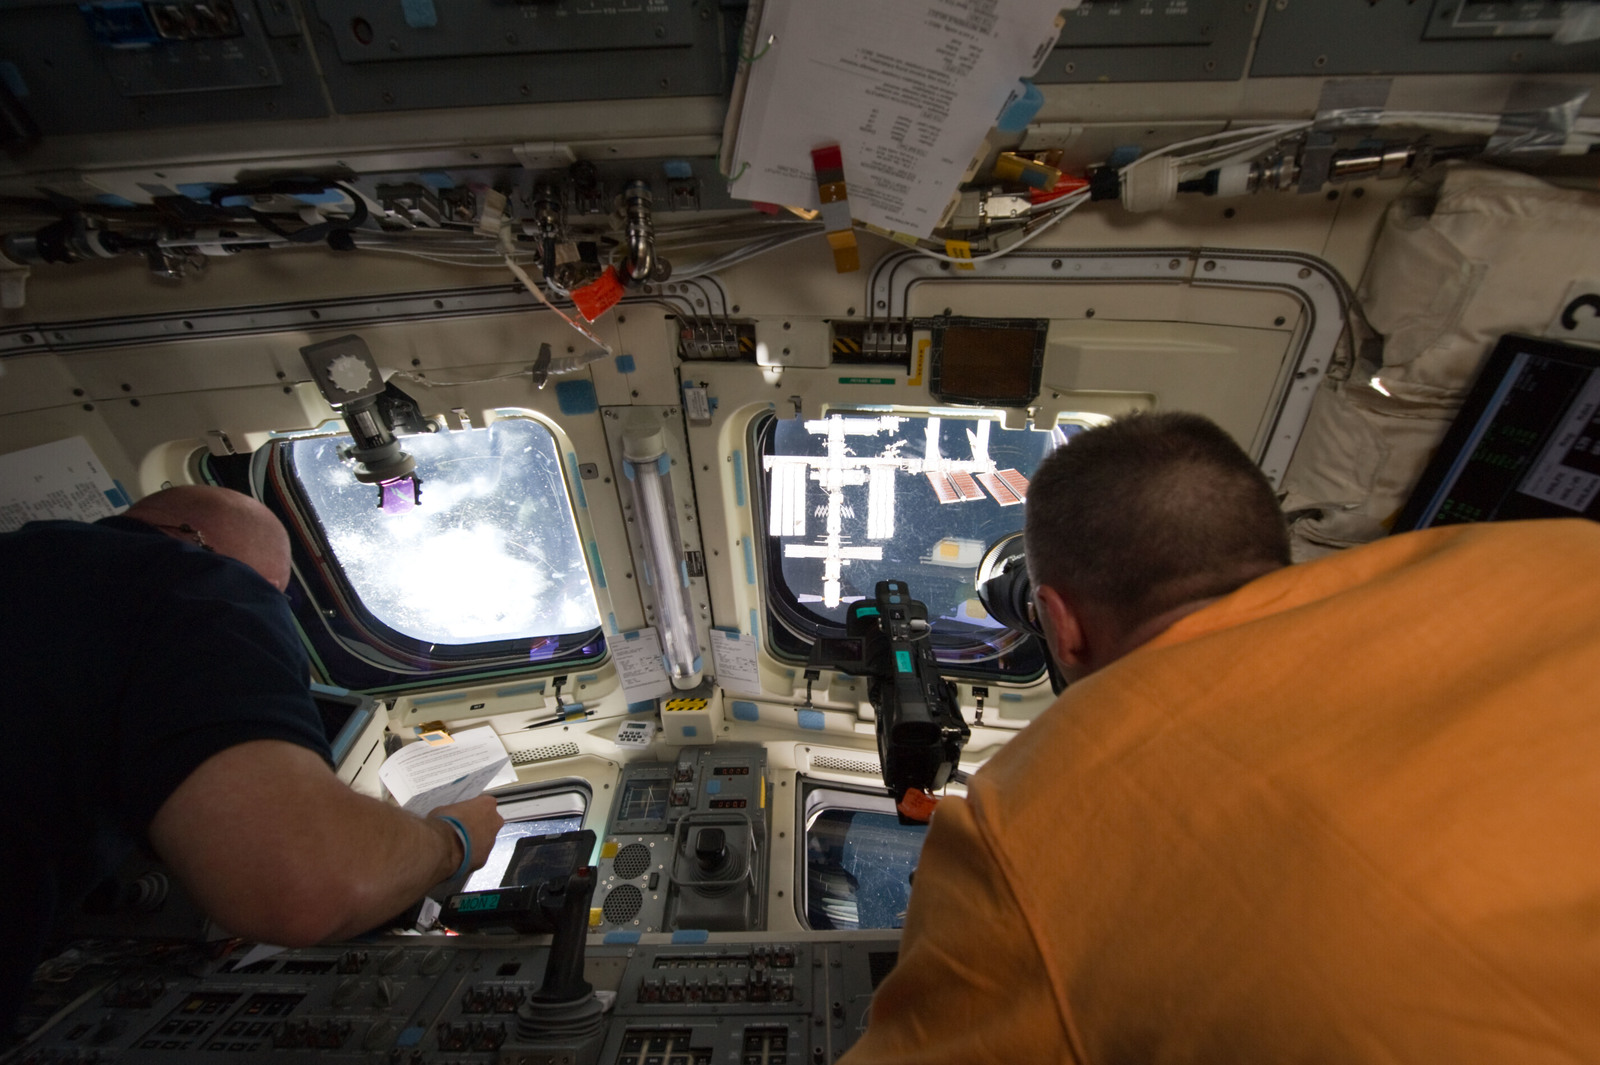 S134E006992 - STS-134 - View of STS-134 Crew Members on the Flight Deck